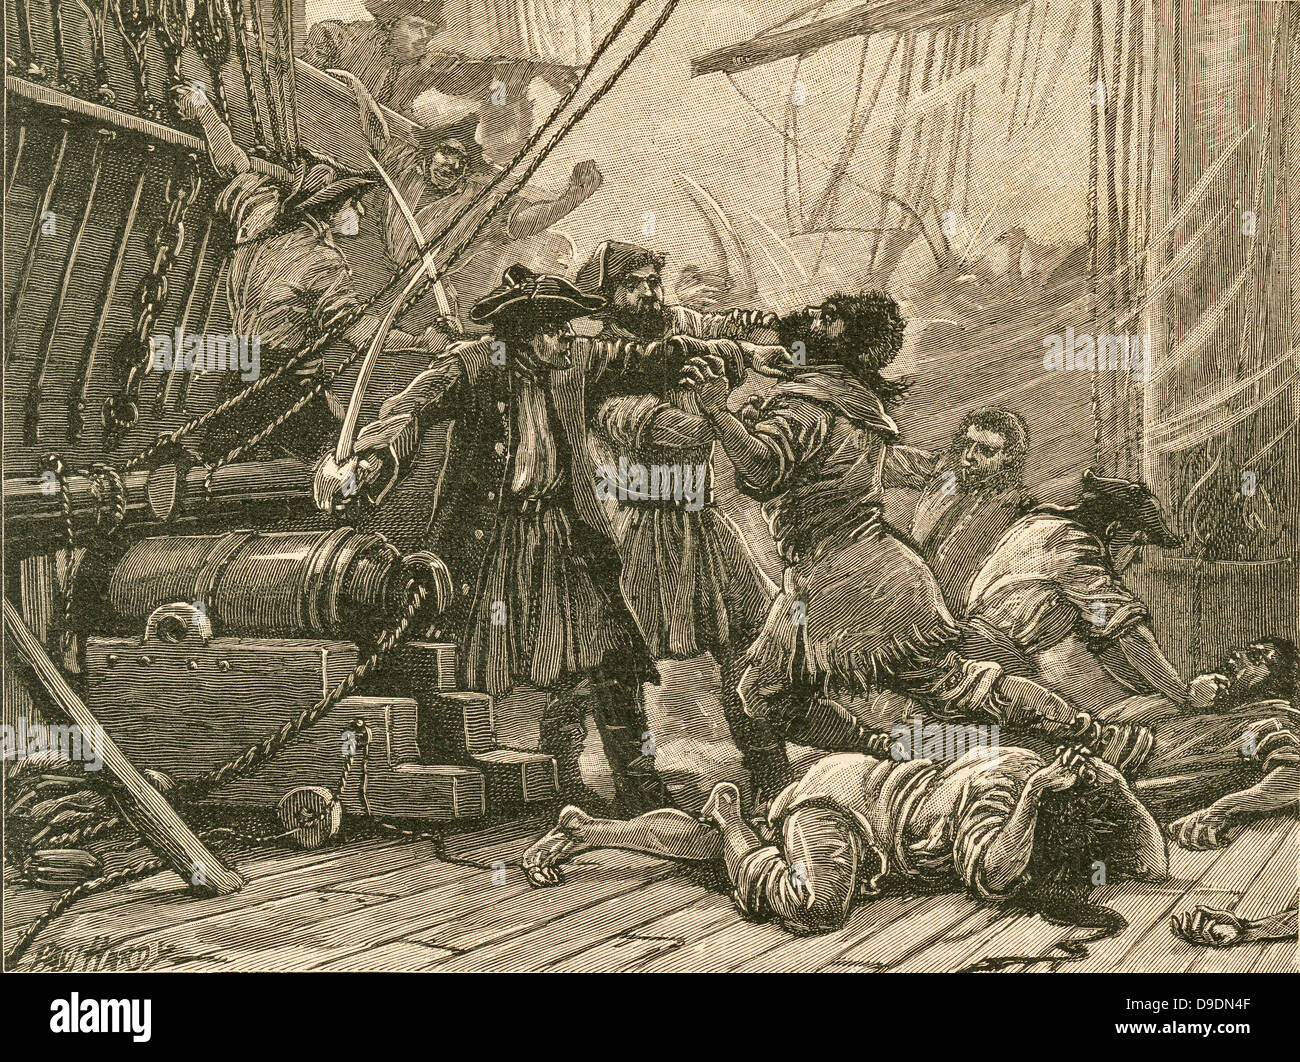 Pirates boarding a ship and overpower the crew: 18th century. - Stock Image